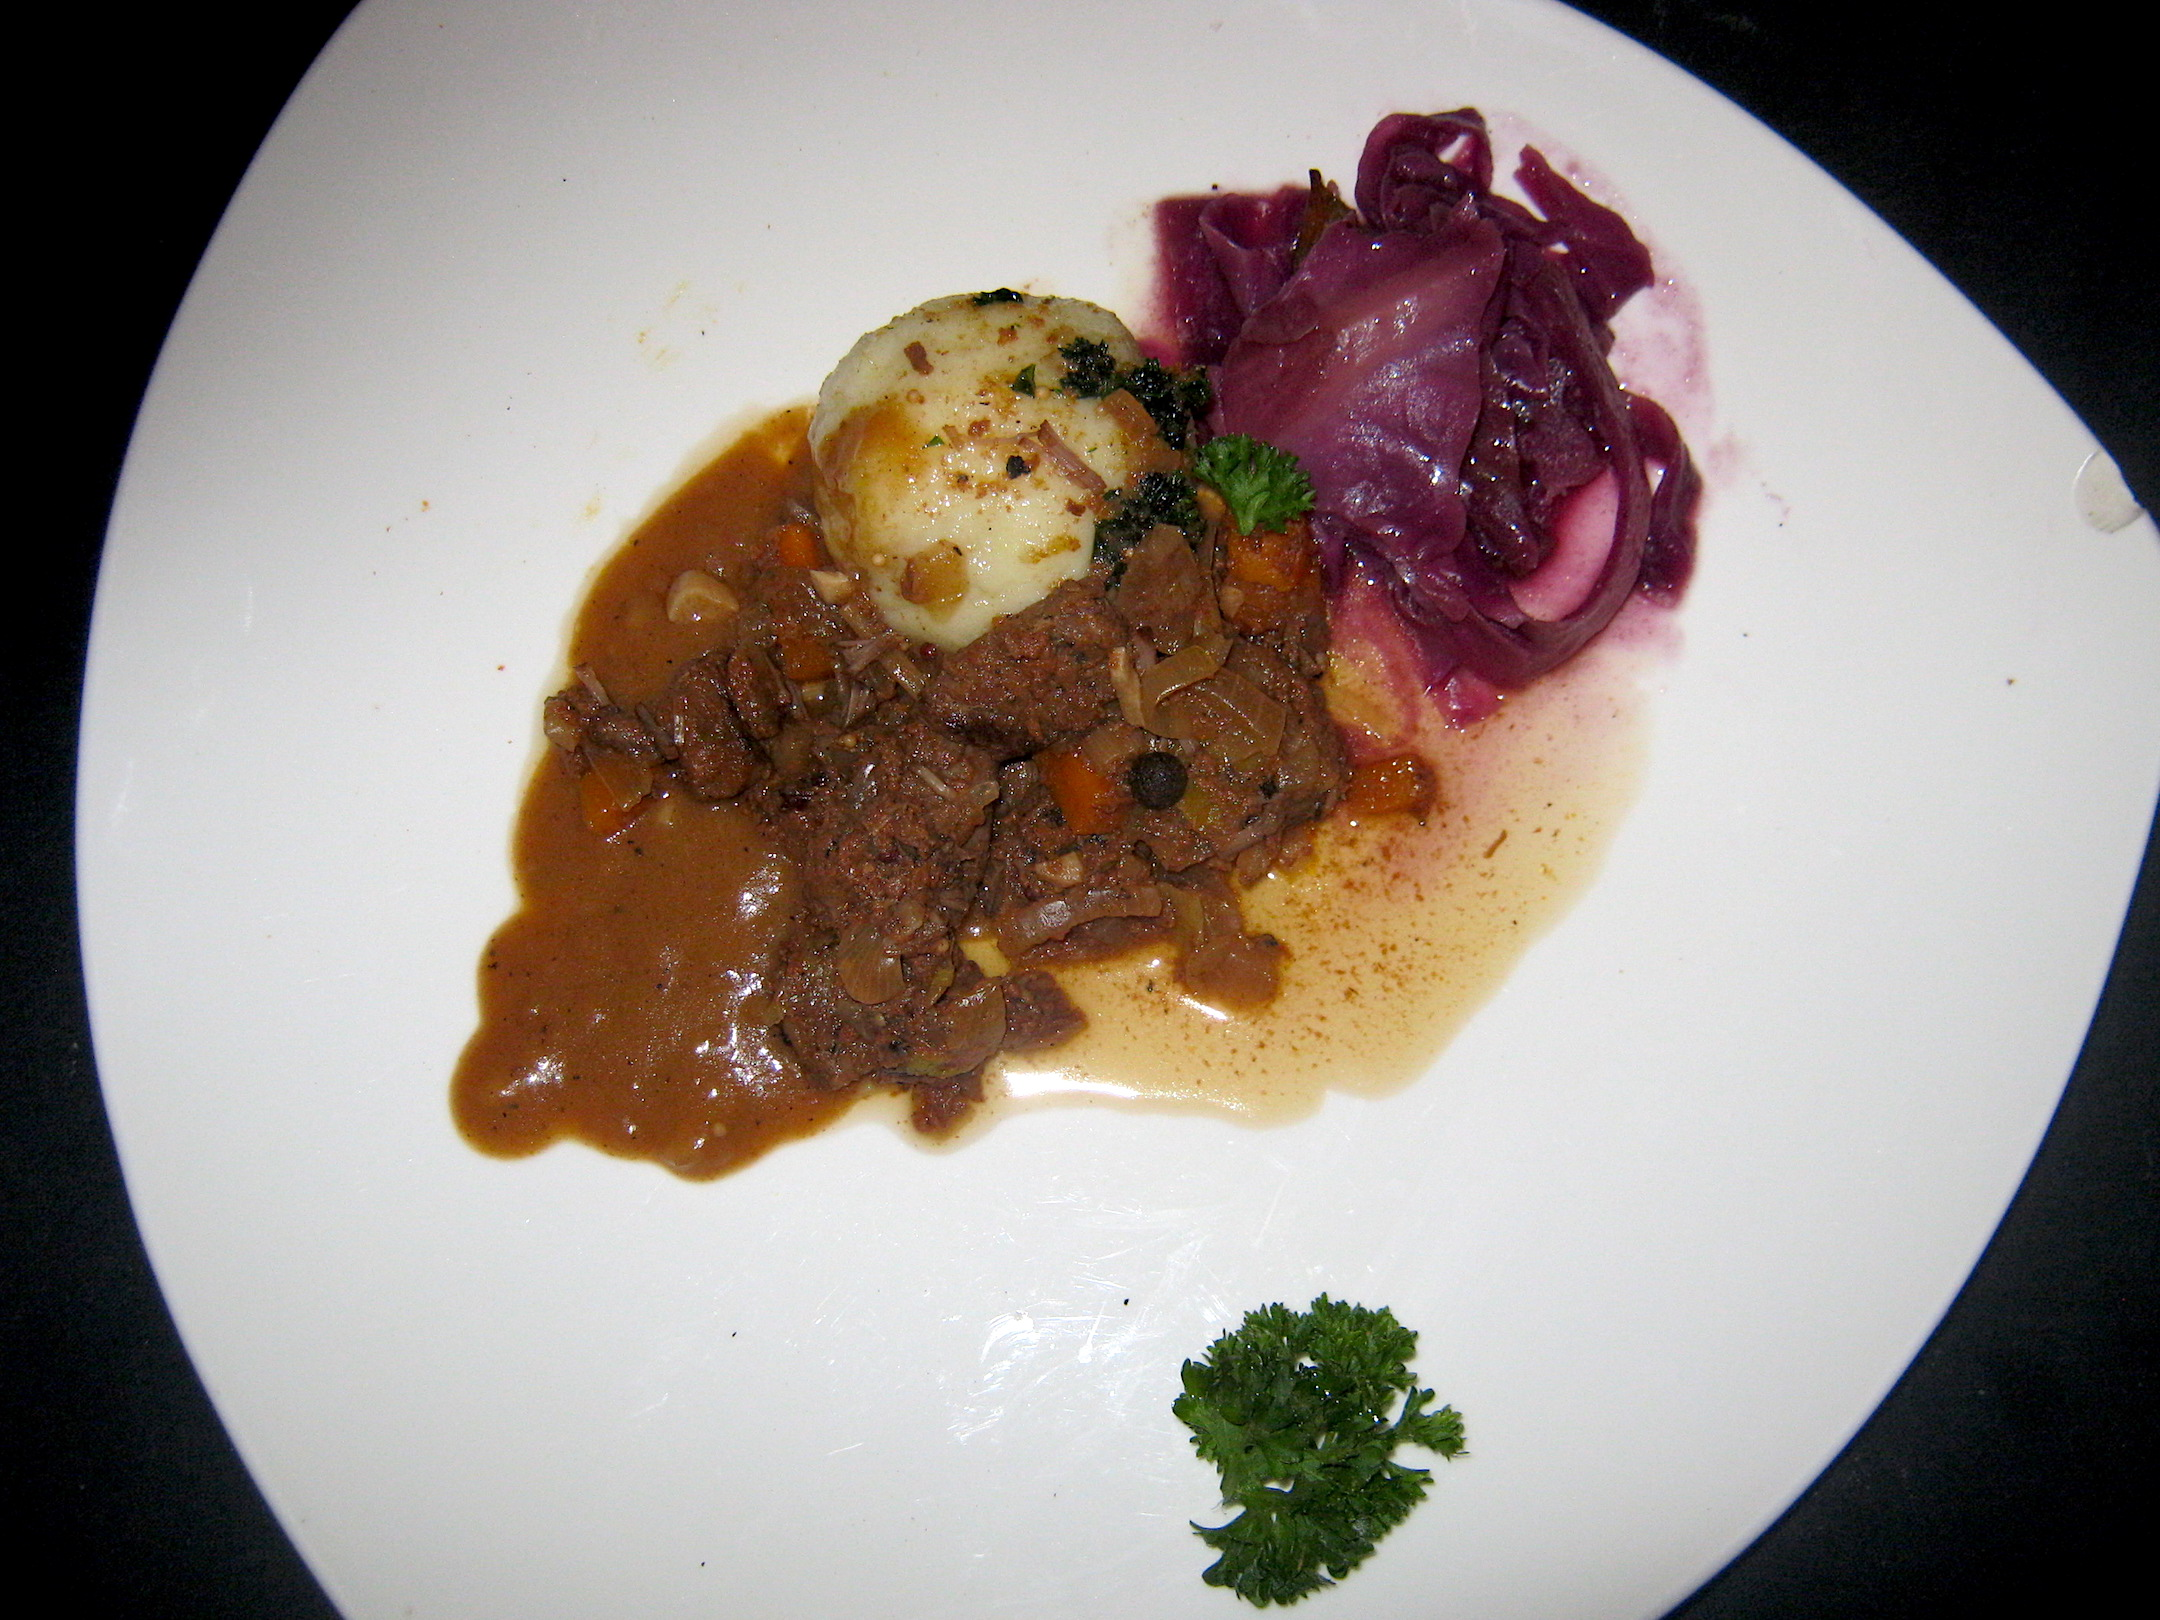 Marinated beef with potato dumpling and red cabbage